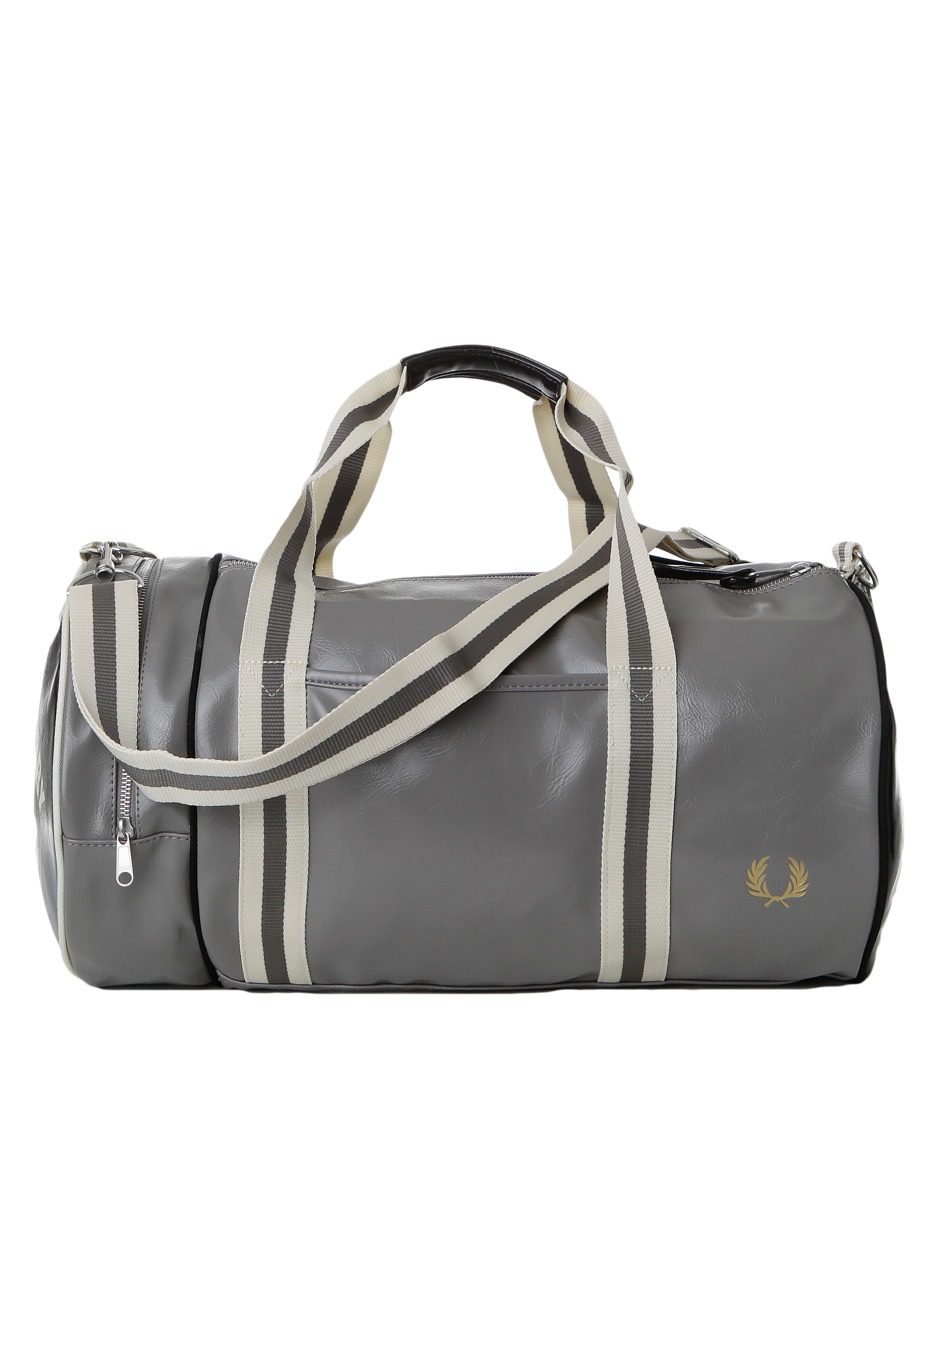 Fred perry barrel bag celebrity